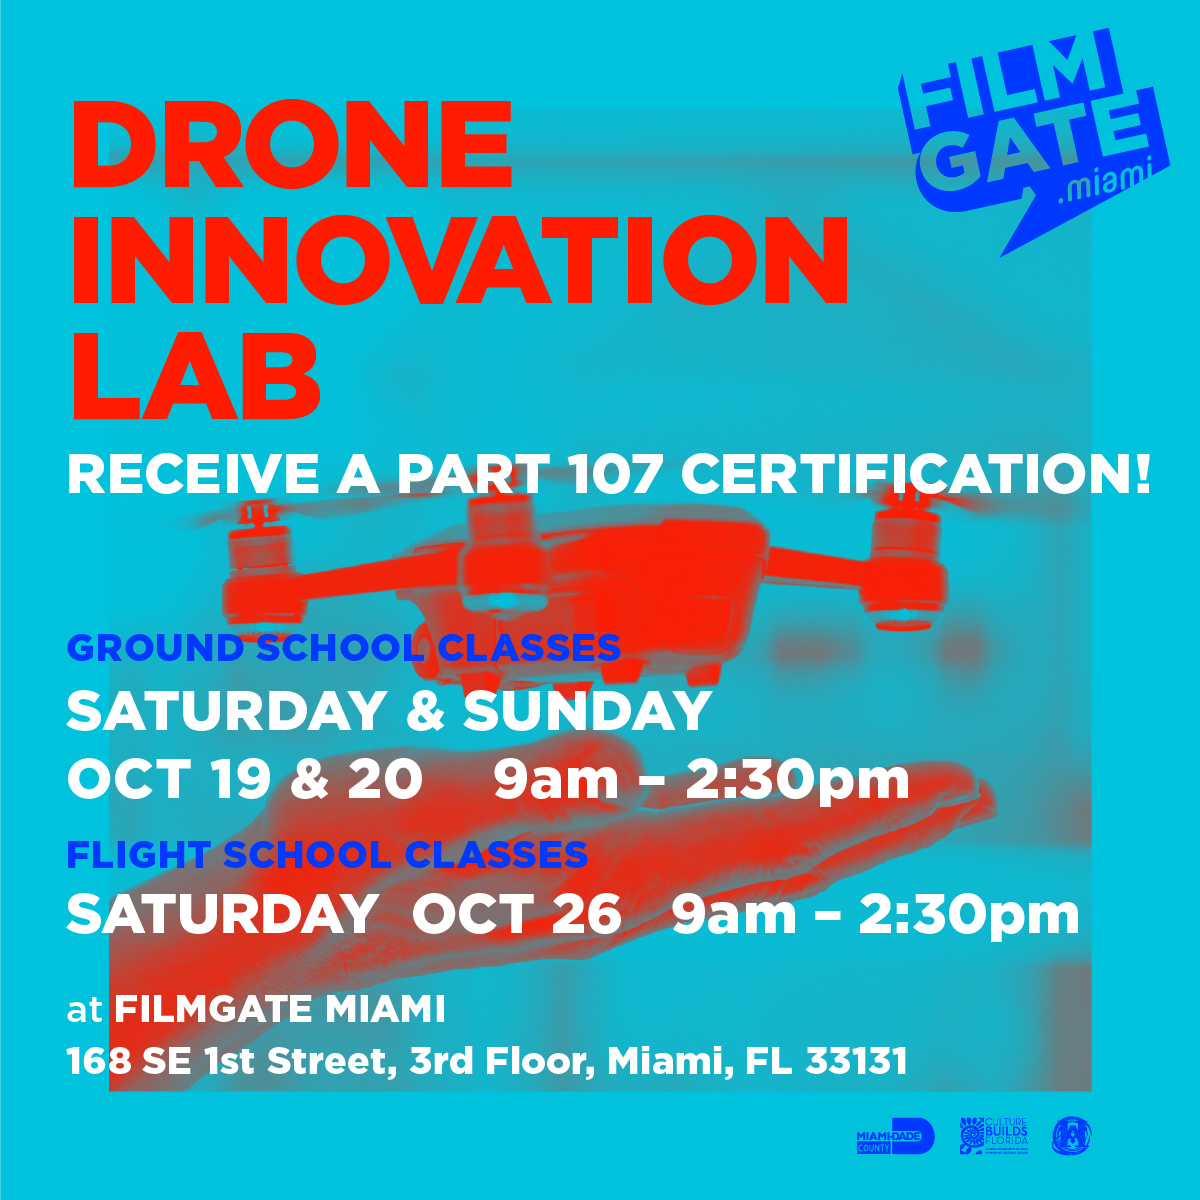 FilmGate Miami presents  DRONE INNOVATION LAB   What does it take to become a drone operator and run a successful business?  The first step is to receive a Part 107 certification.    We teach:  - FAA Rules & Regulations - Airspace Requirements - Loading and Performance - Weather Conditions - Operations  By the end of this weekend, you are completely prepared to take and pass the Part 107 certification test.    Ground School Classes: October 19th and 20th, 2019  9:00 AM - 2:30 PM   Flight School Classes  October 26th  9:00AM - 2:30PM